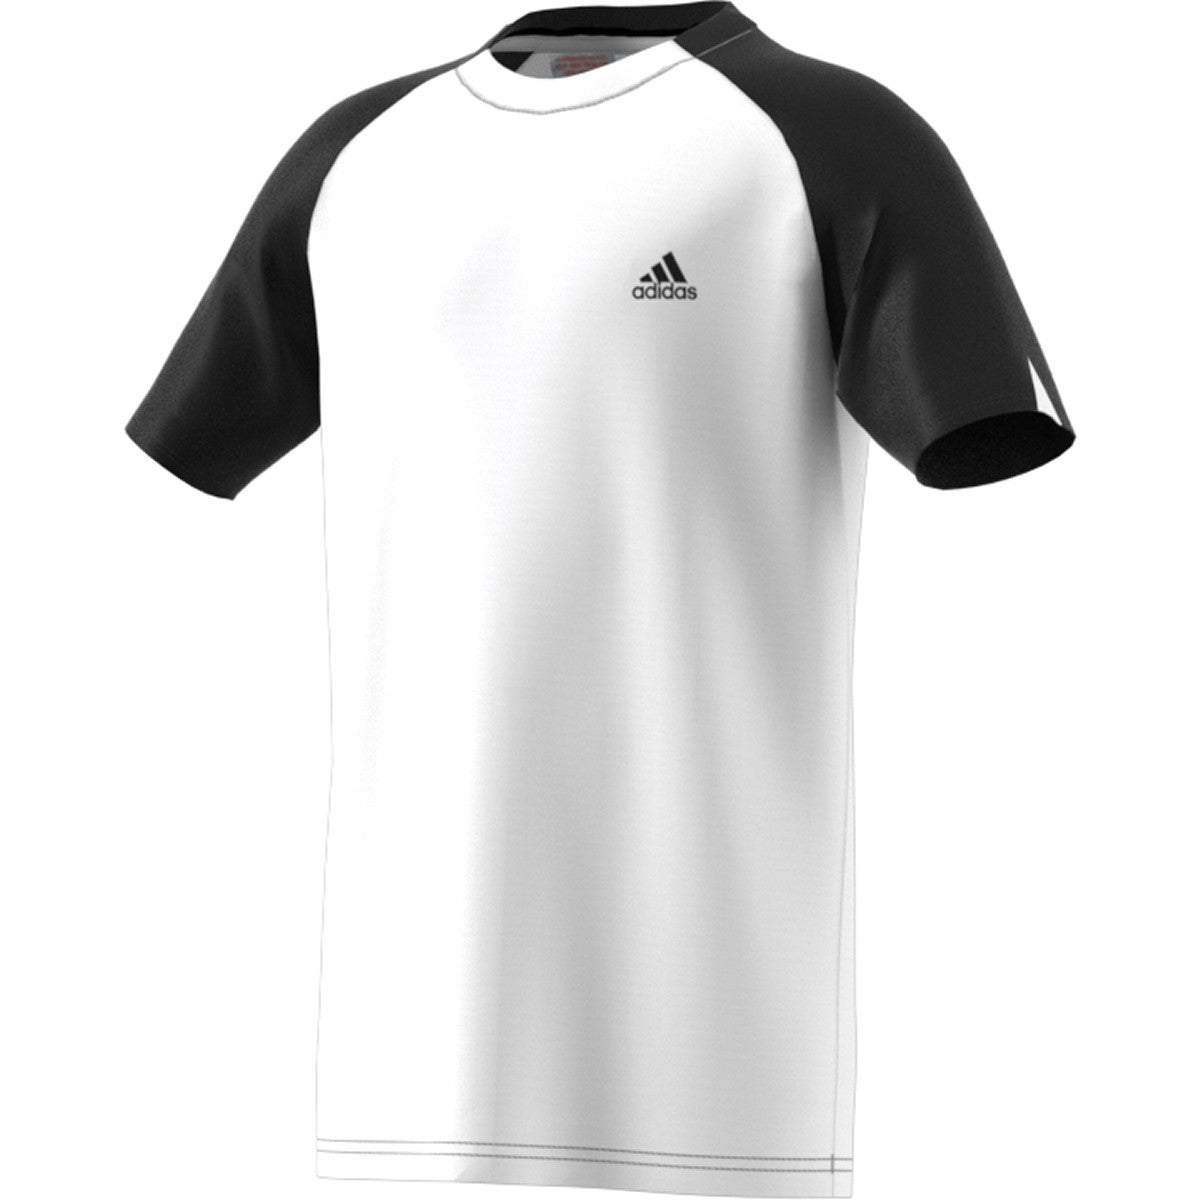 Adidas Boys Fall Club Tee    White/Black